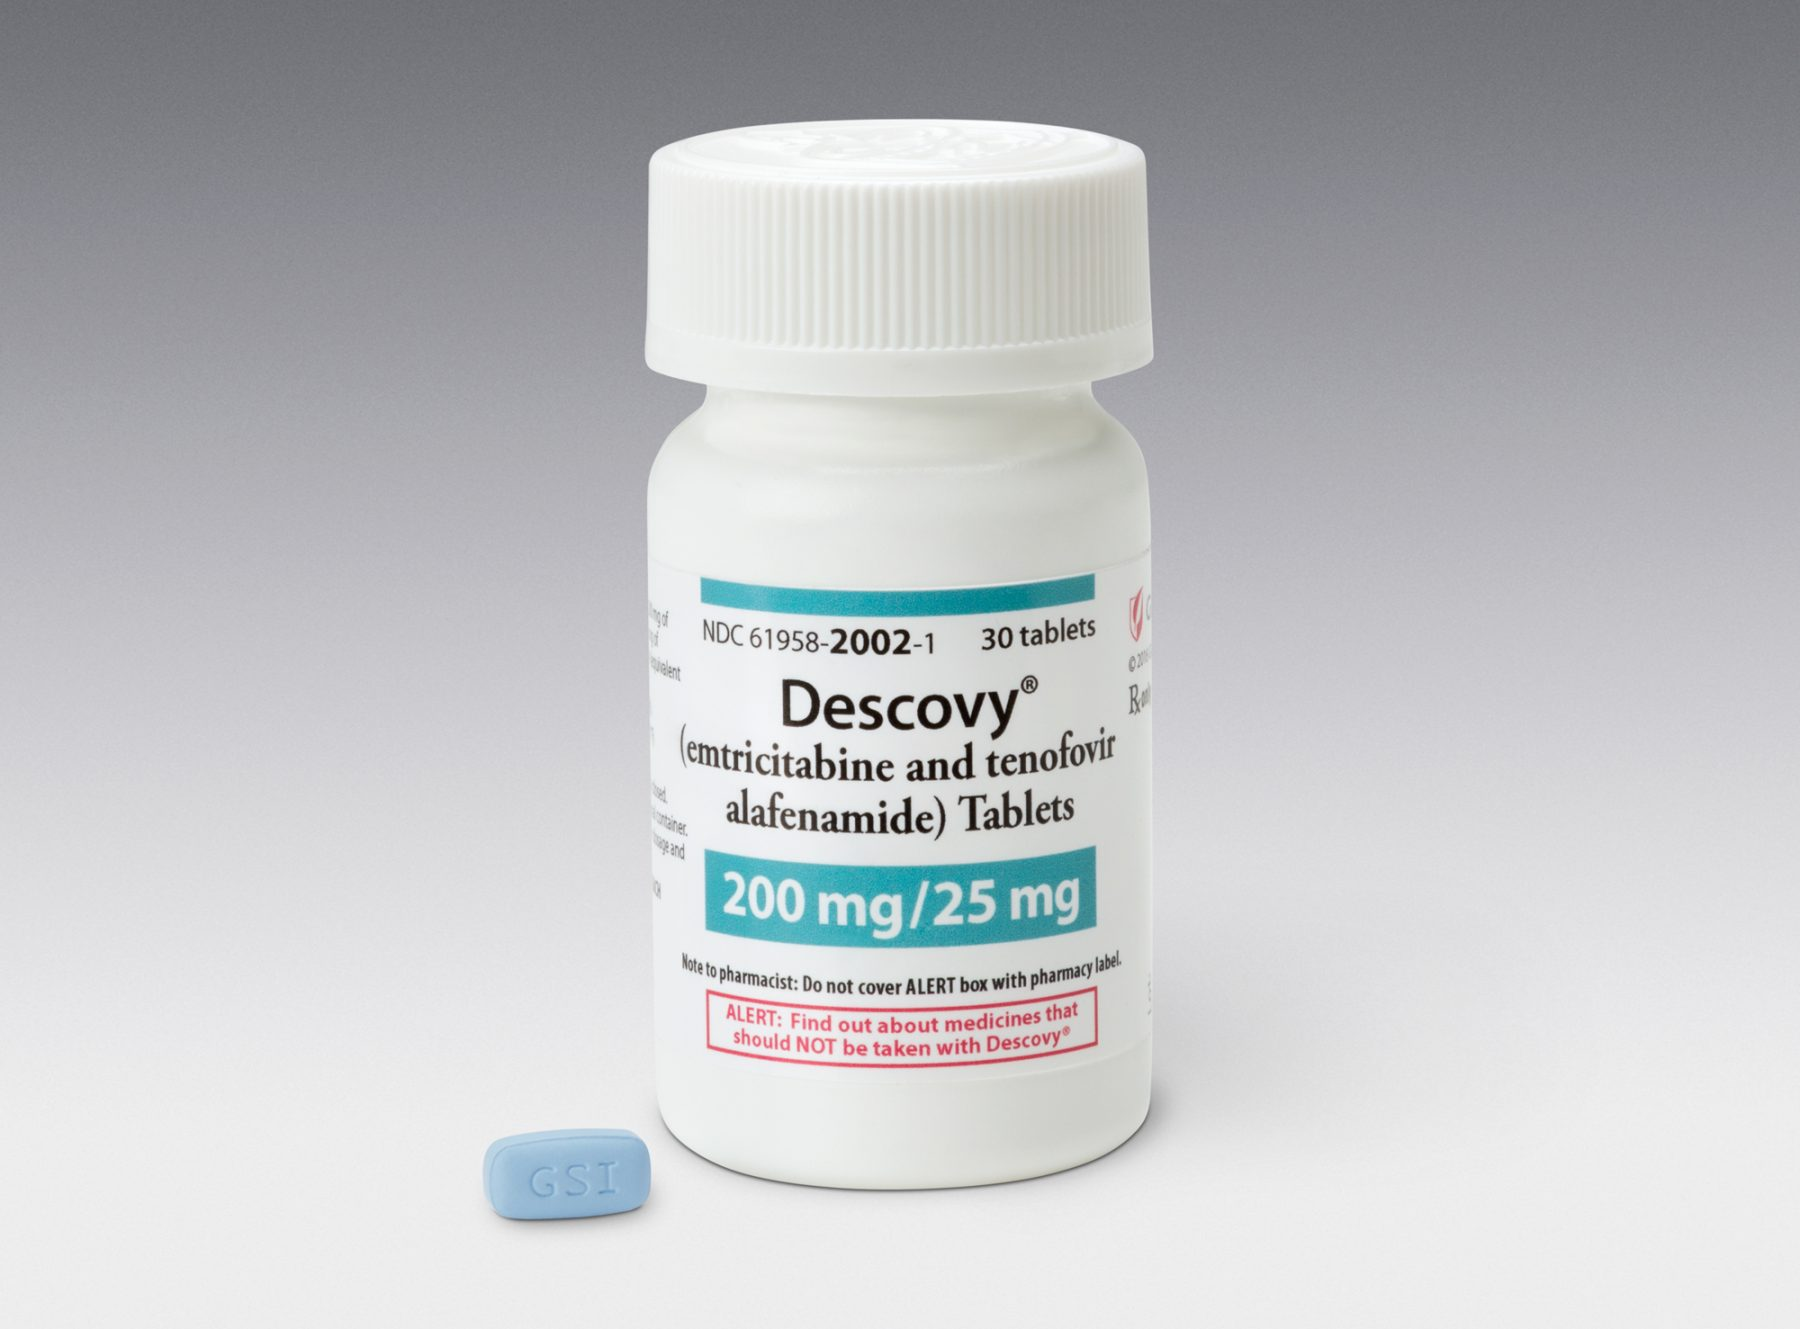 Descovy bottle tablet